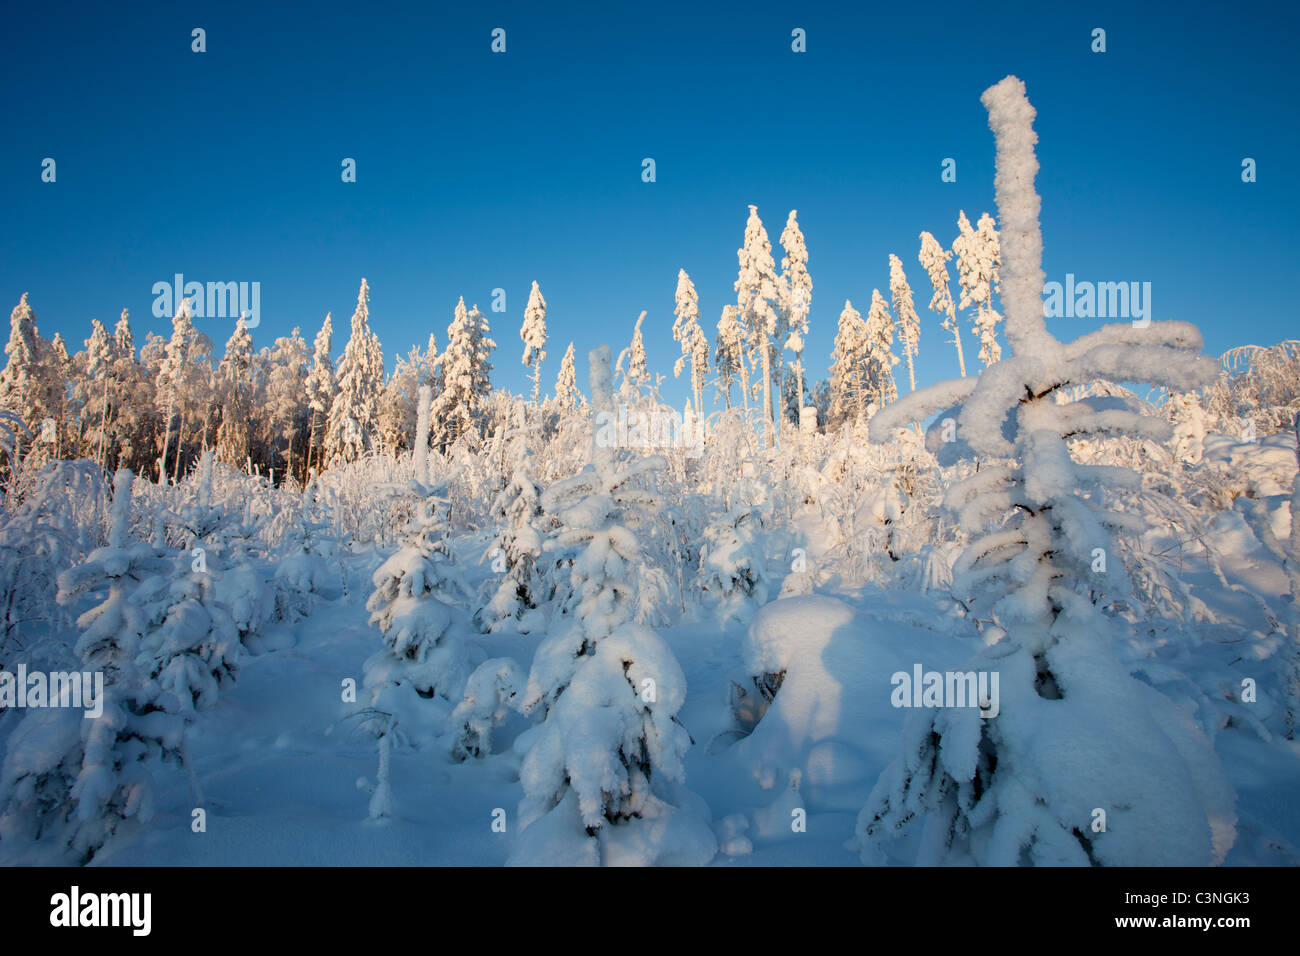 Planted pine saplings growing in an old clear cutting area , Finland - Stock Image